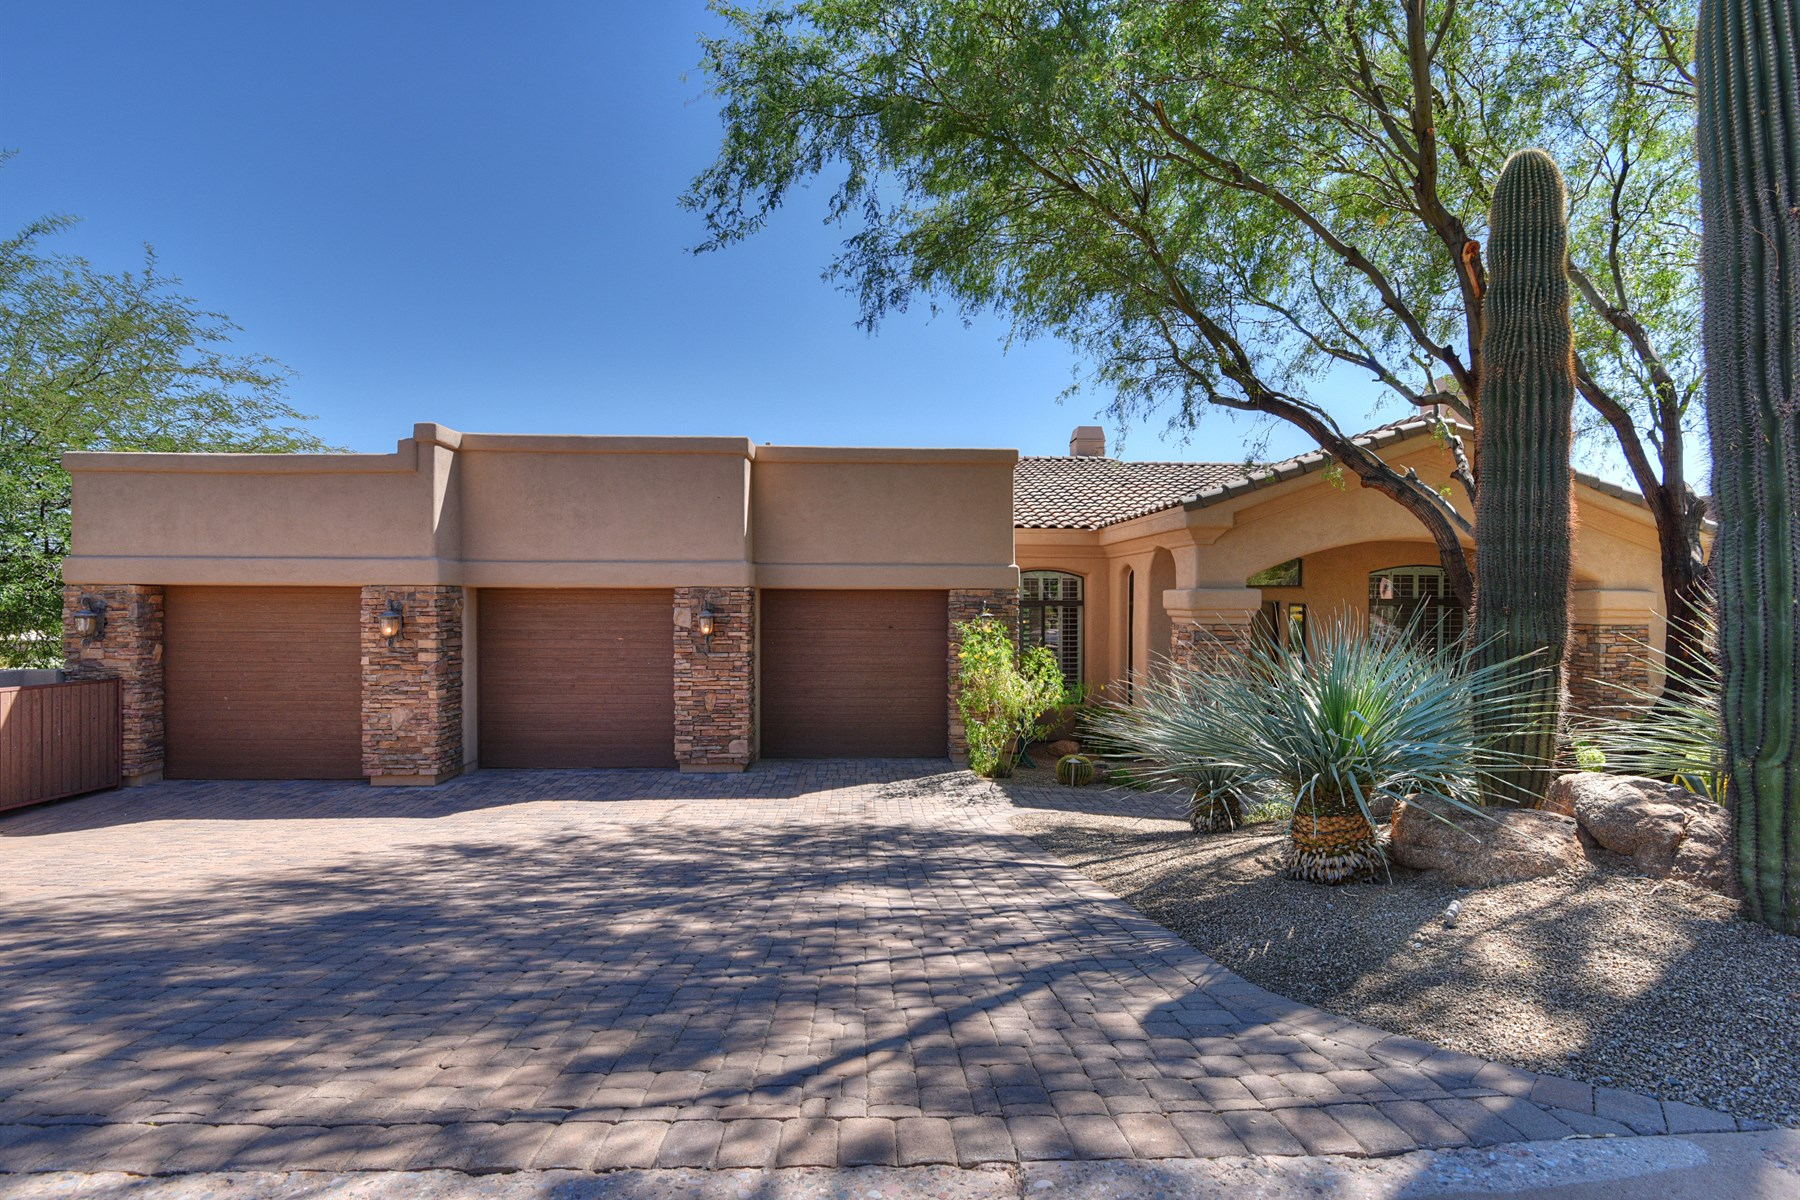 一戸建て のために 売買 アット Stunning Troon and McDowell Mountain views from this custom home 11417 E Chama Rd Scottsdale, アリゾナ 85255 アメリカ合衆国